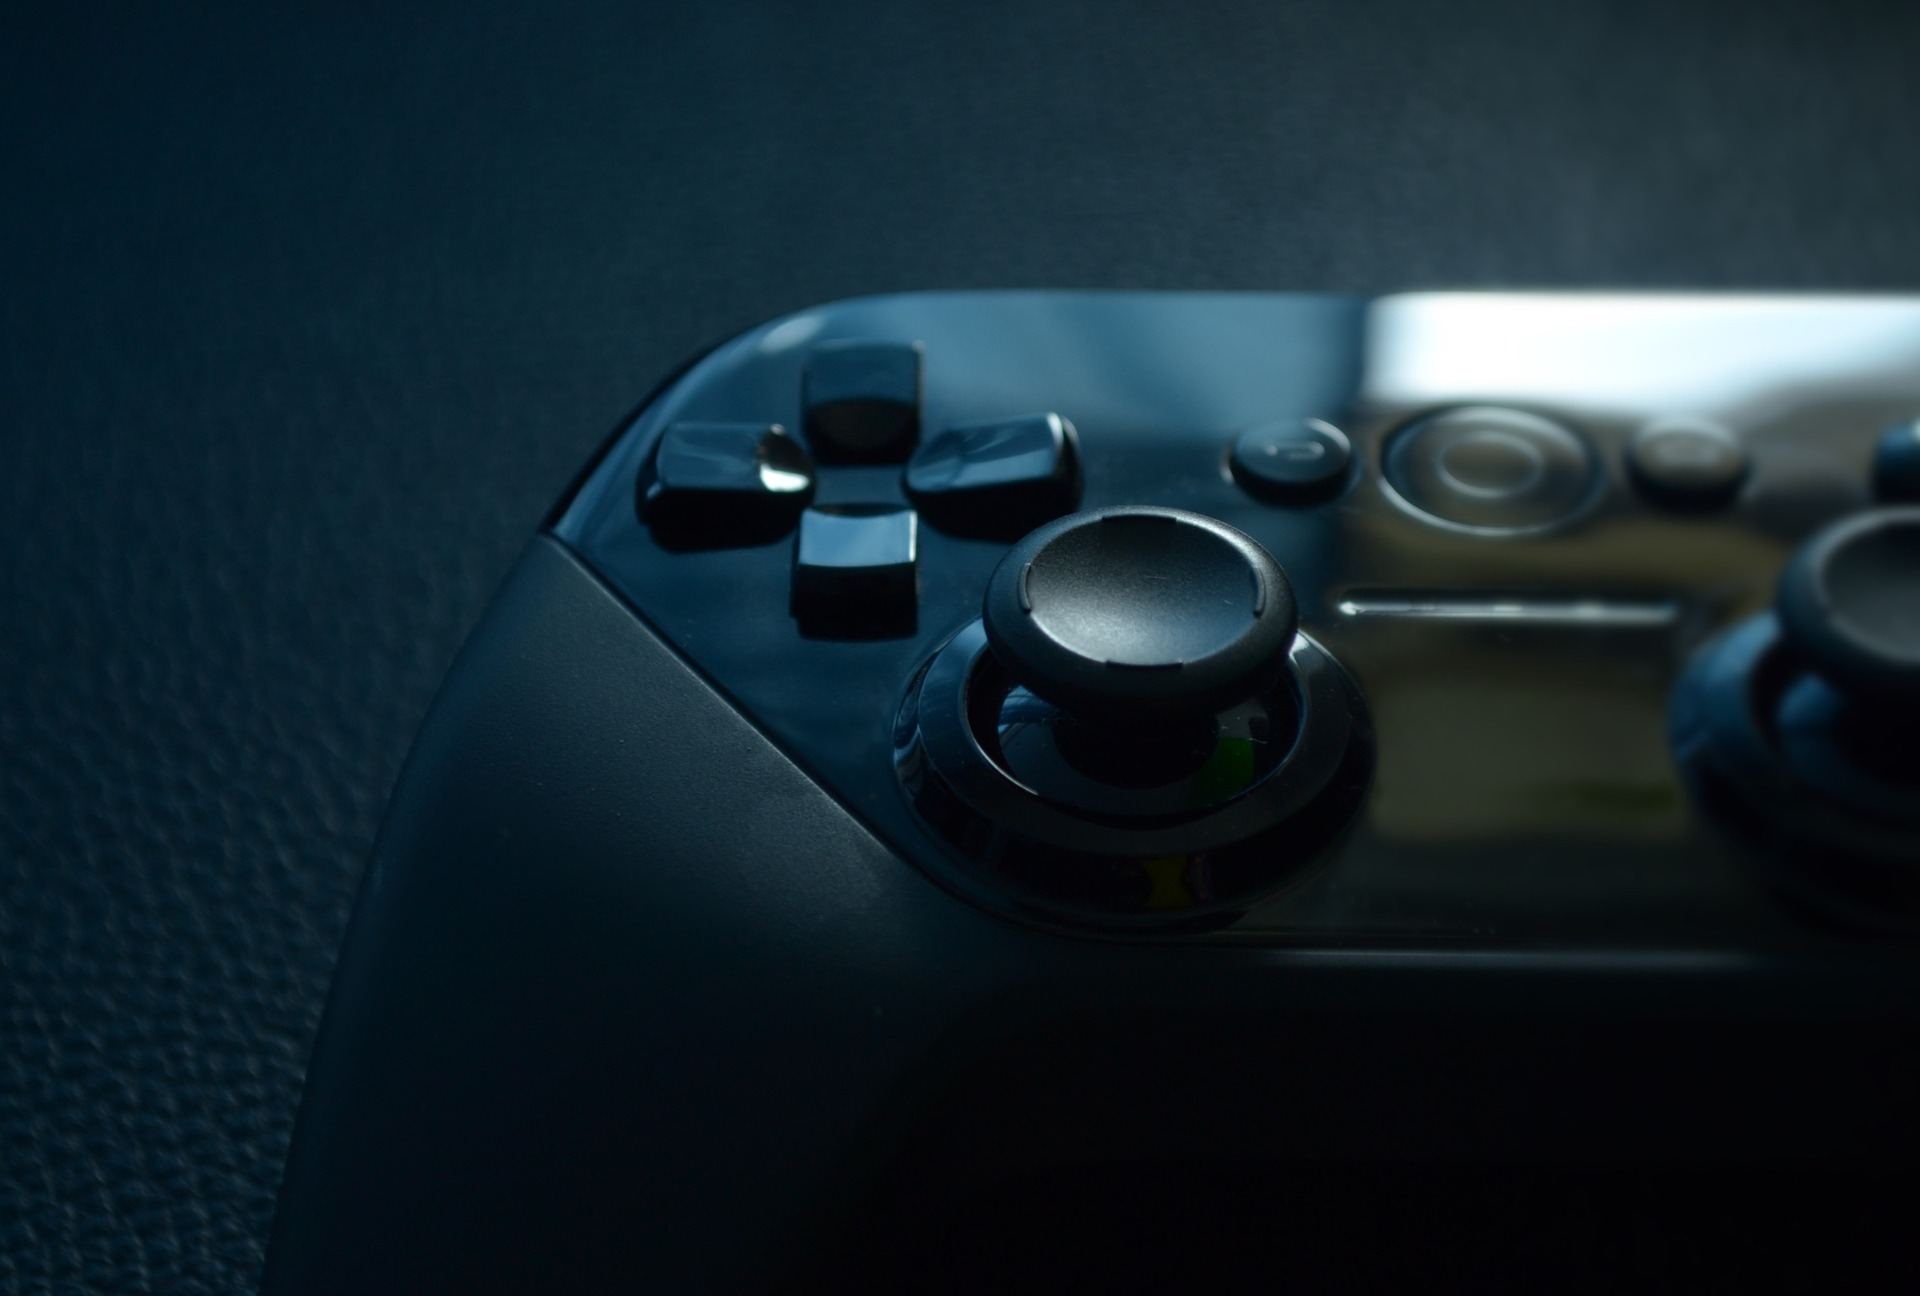 How to Keep a Clean Controller and Sanitize Your Gaming Gear